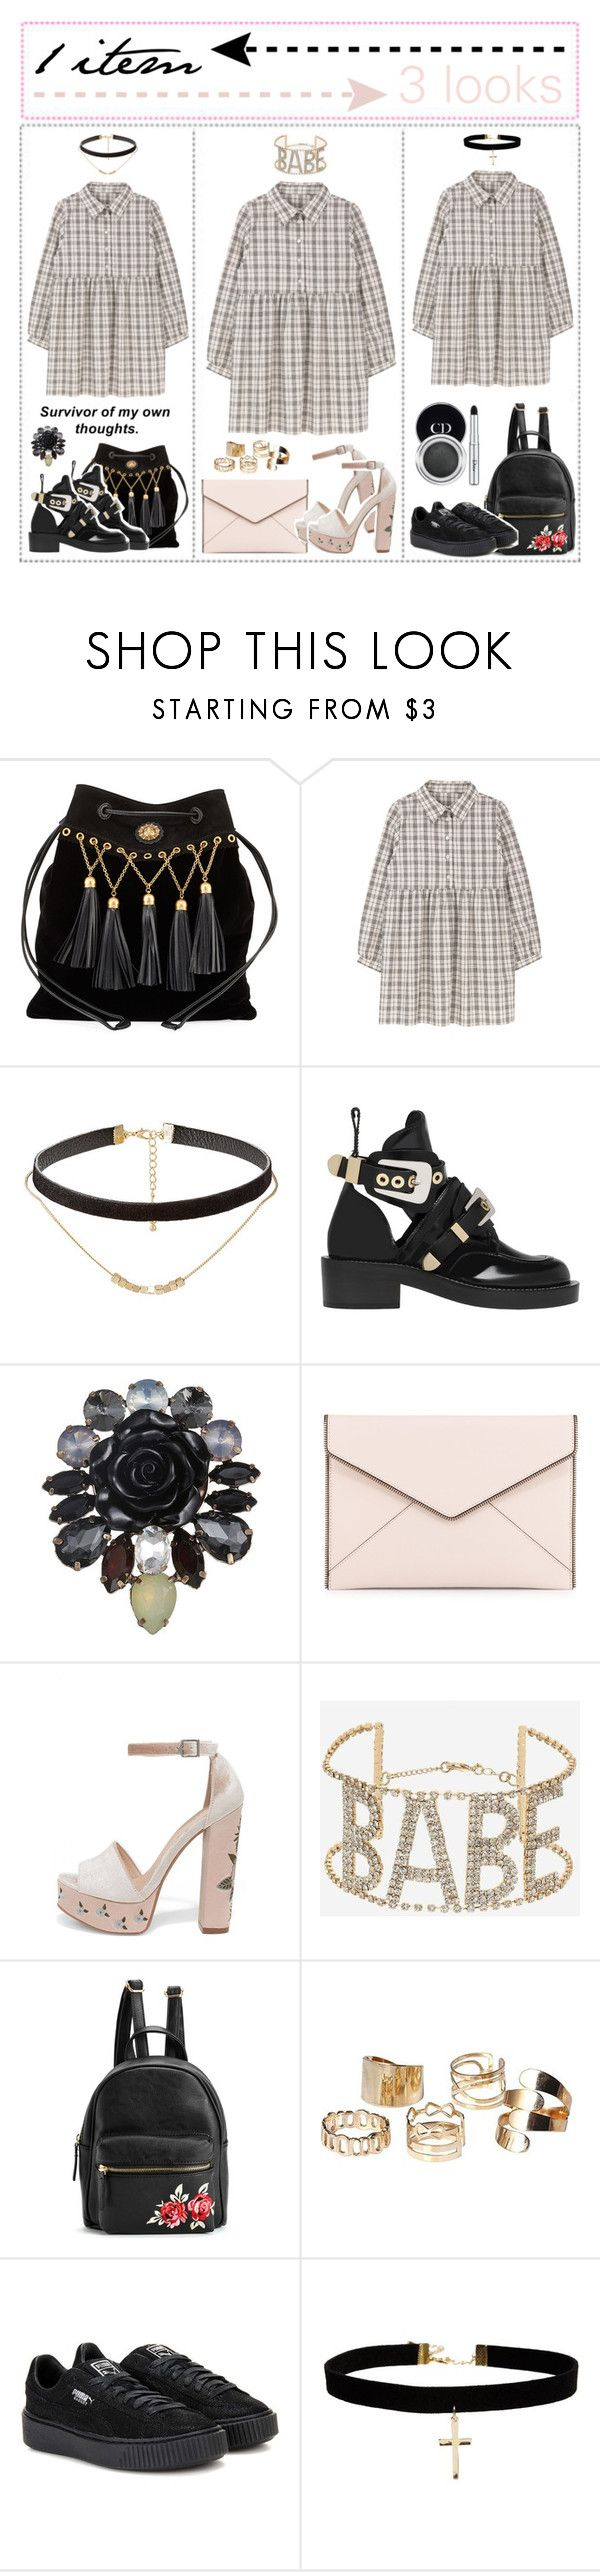 """1 item 